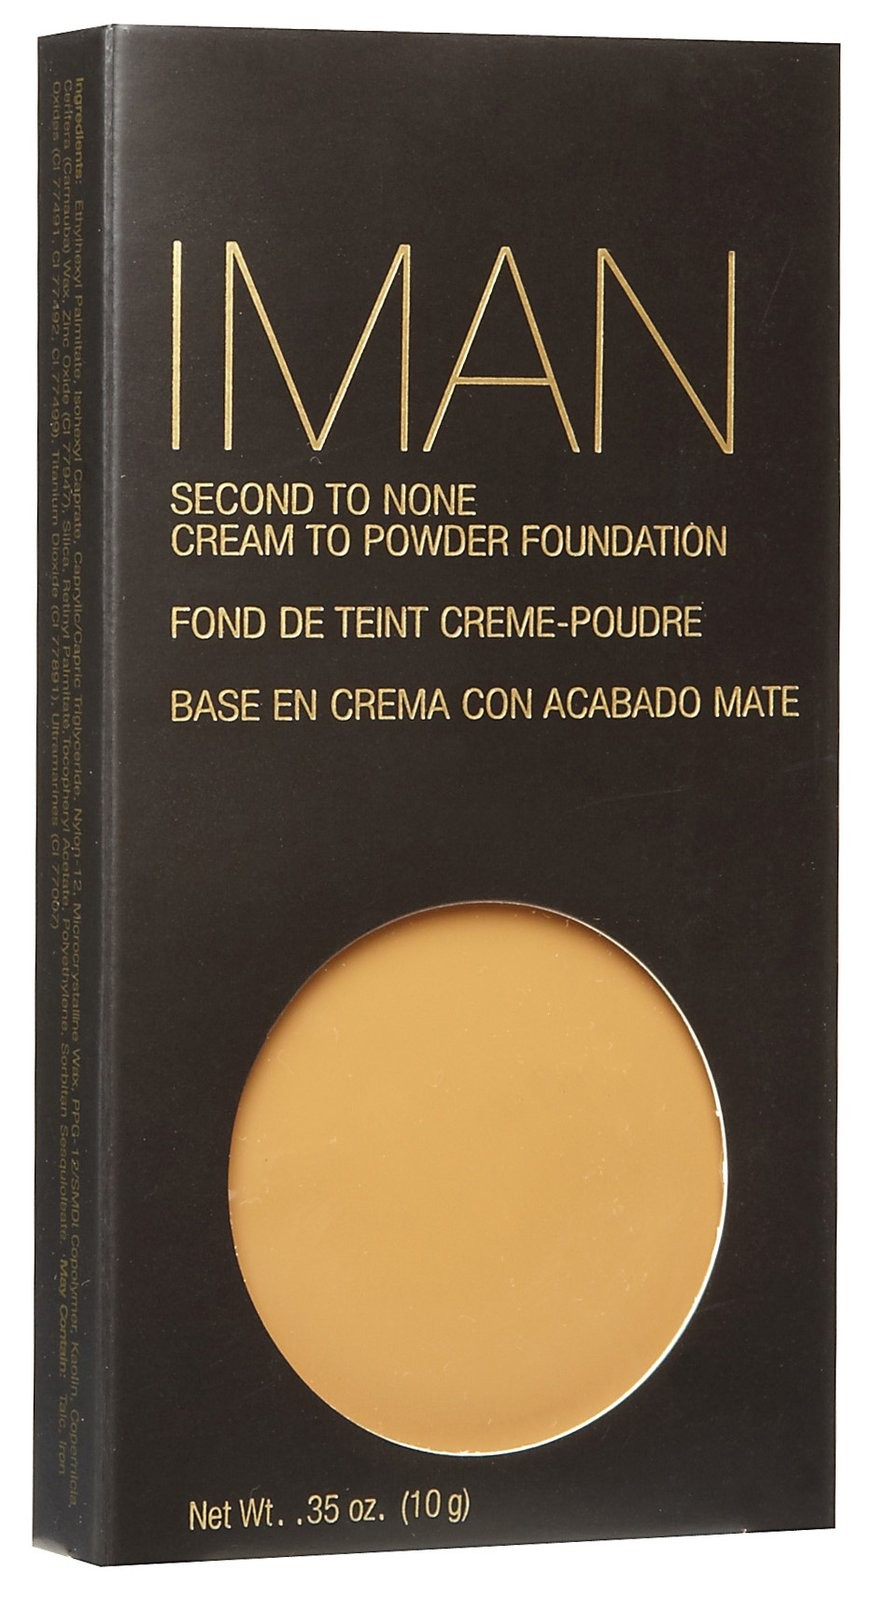 Iman Second To None Cream To Powder sand 1